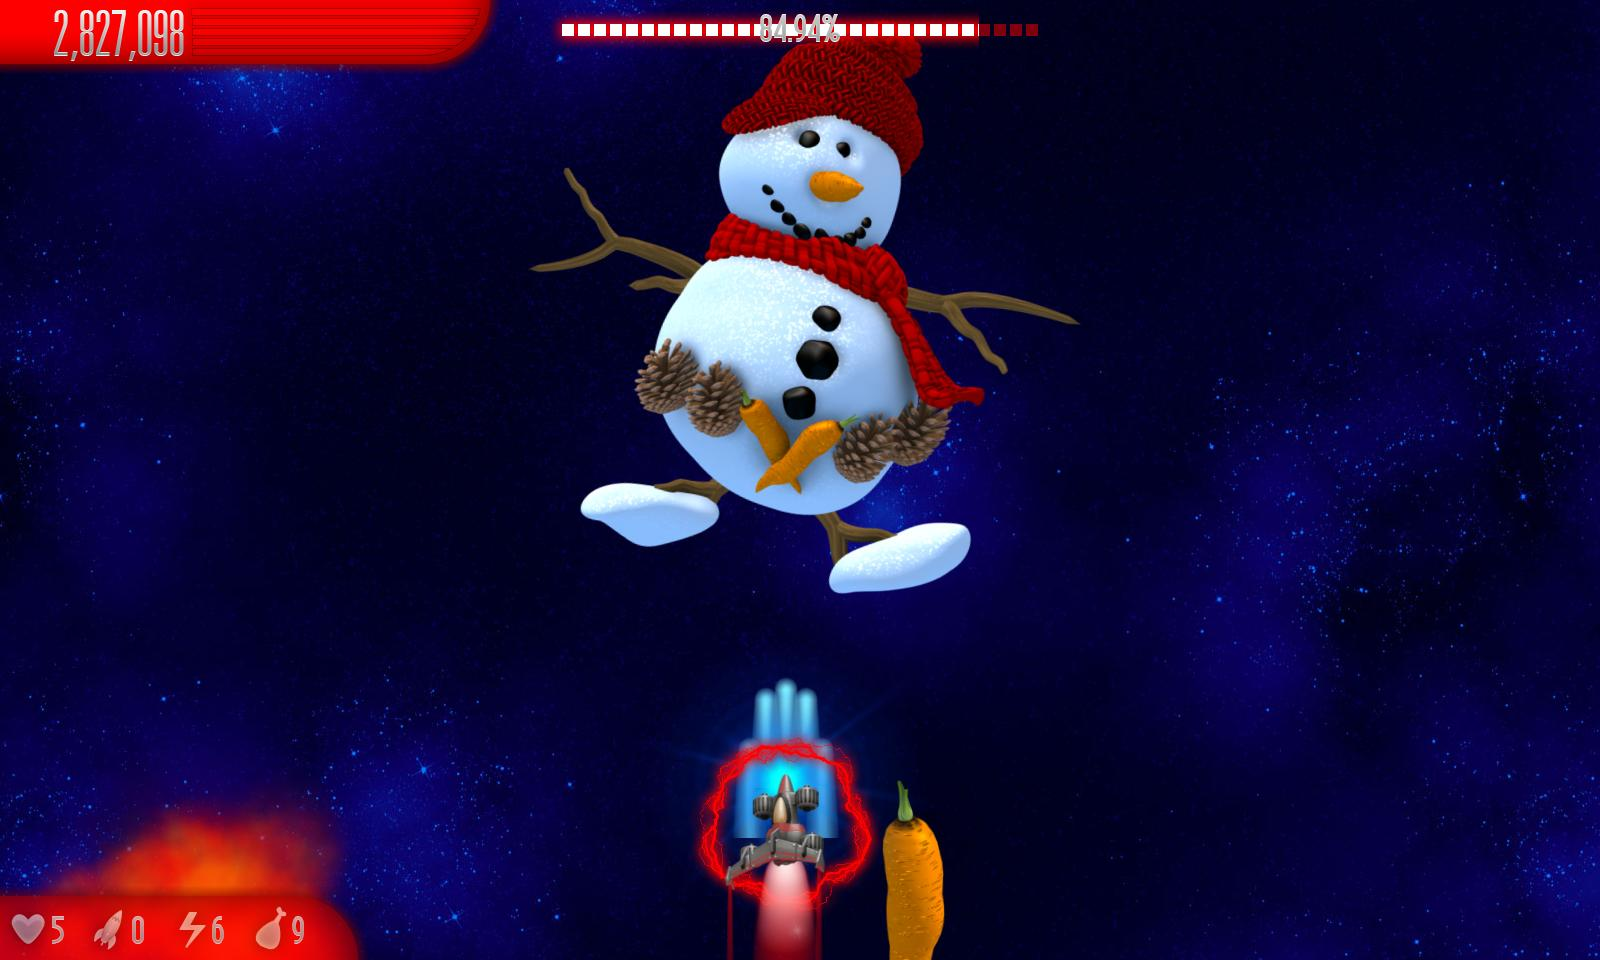 Christmas Images Hd Download.Chicken Invaders 5 Xmas Hd For Android Apk Download